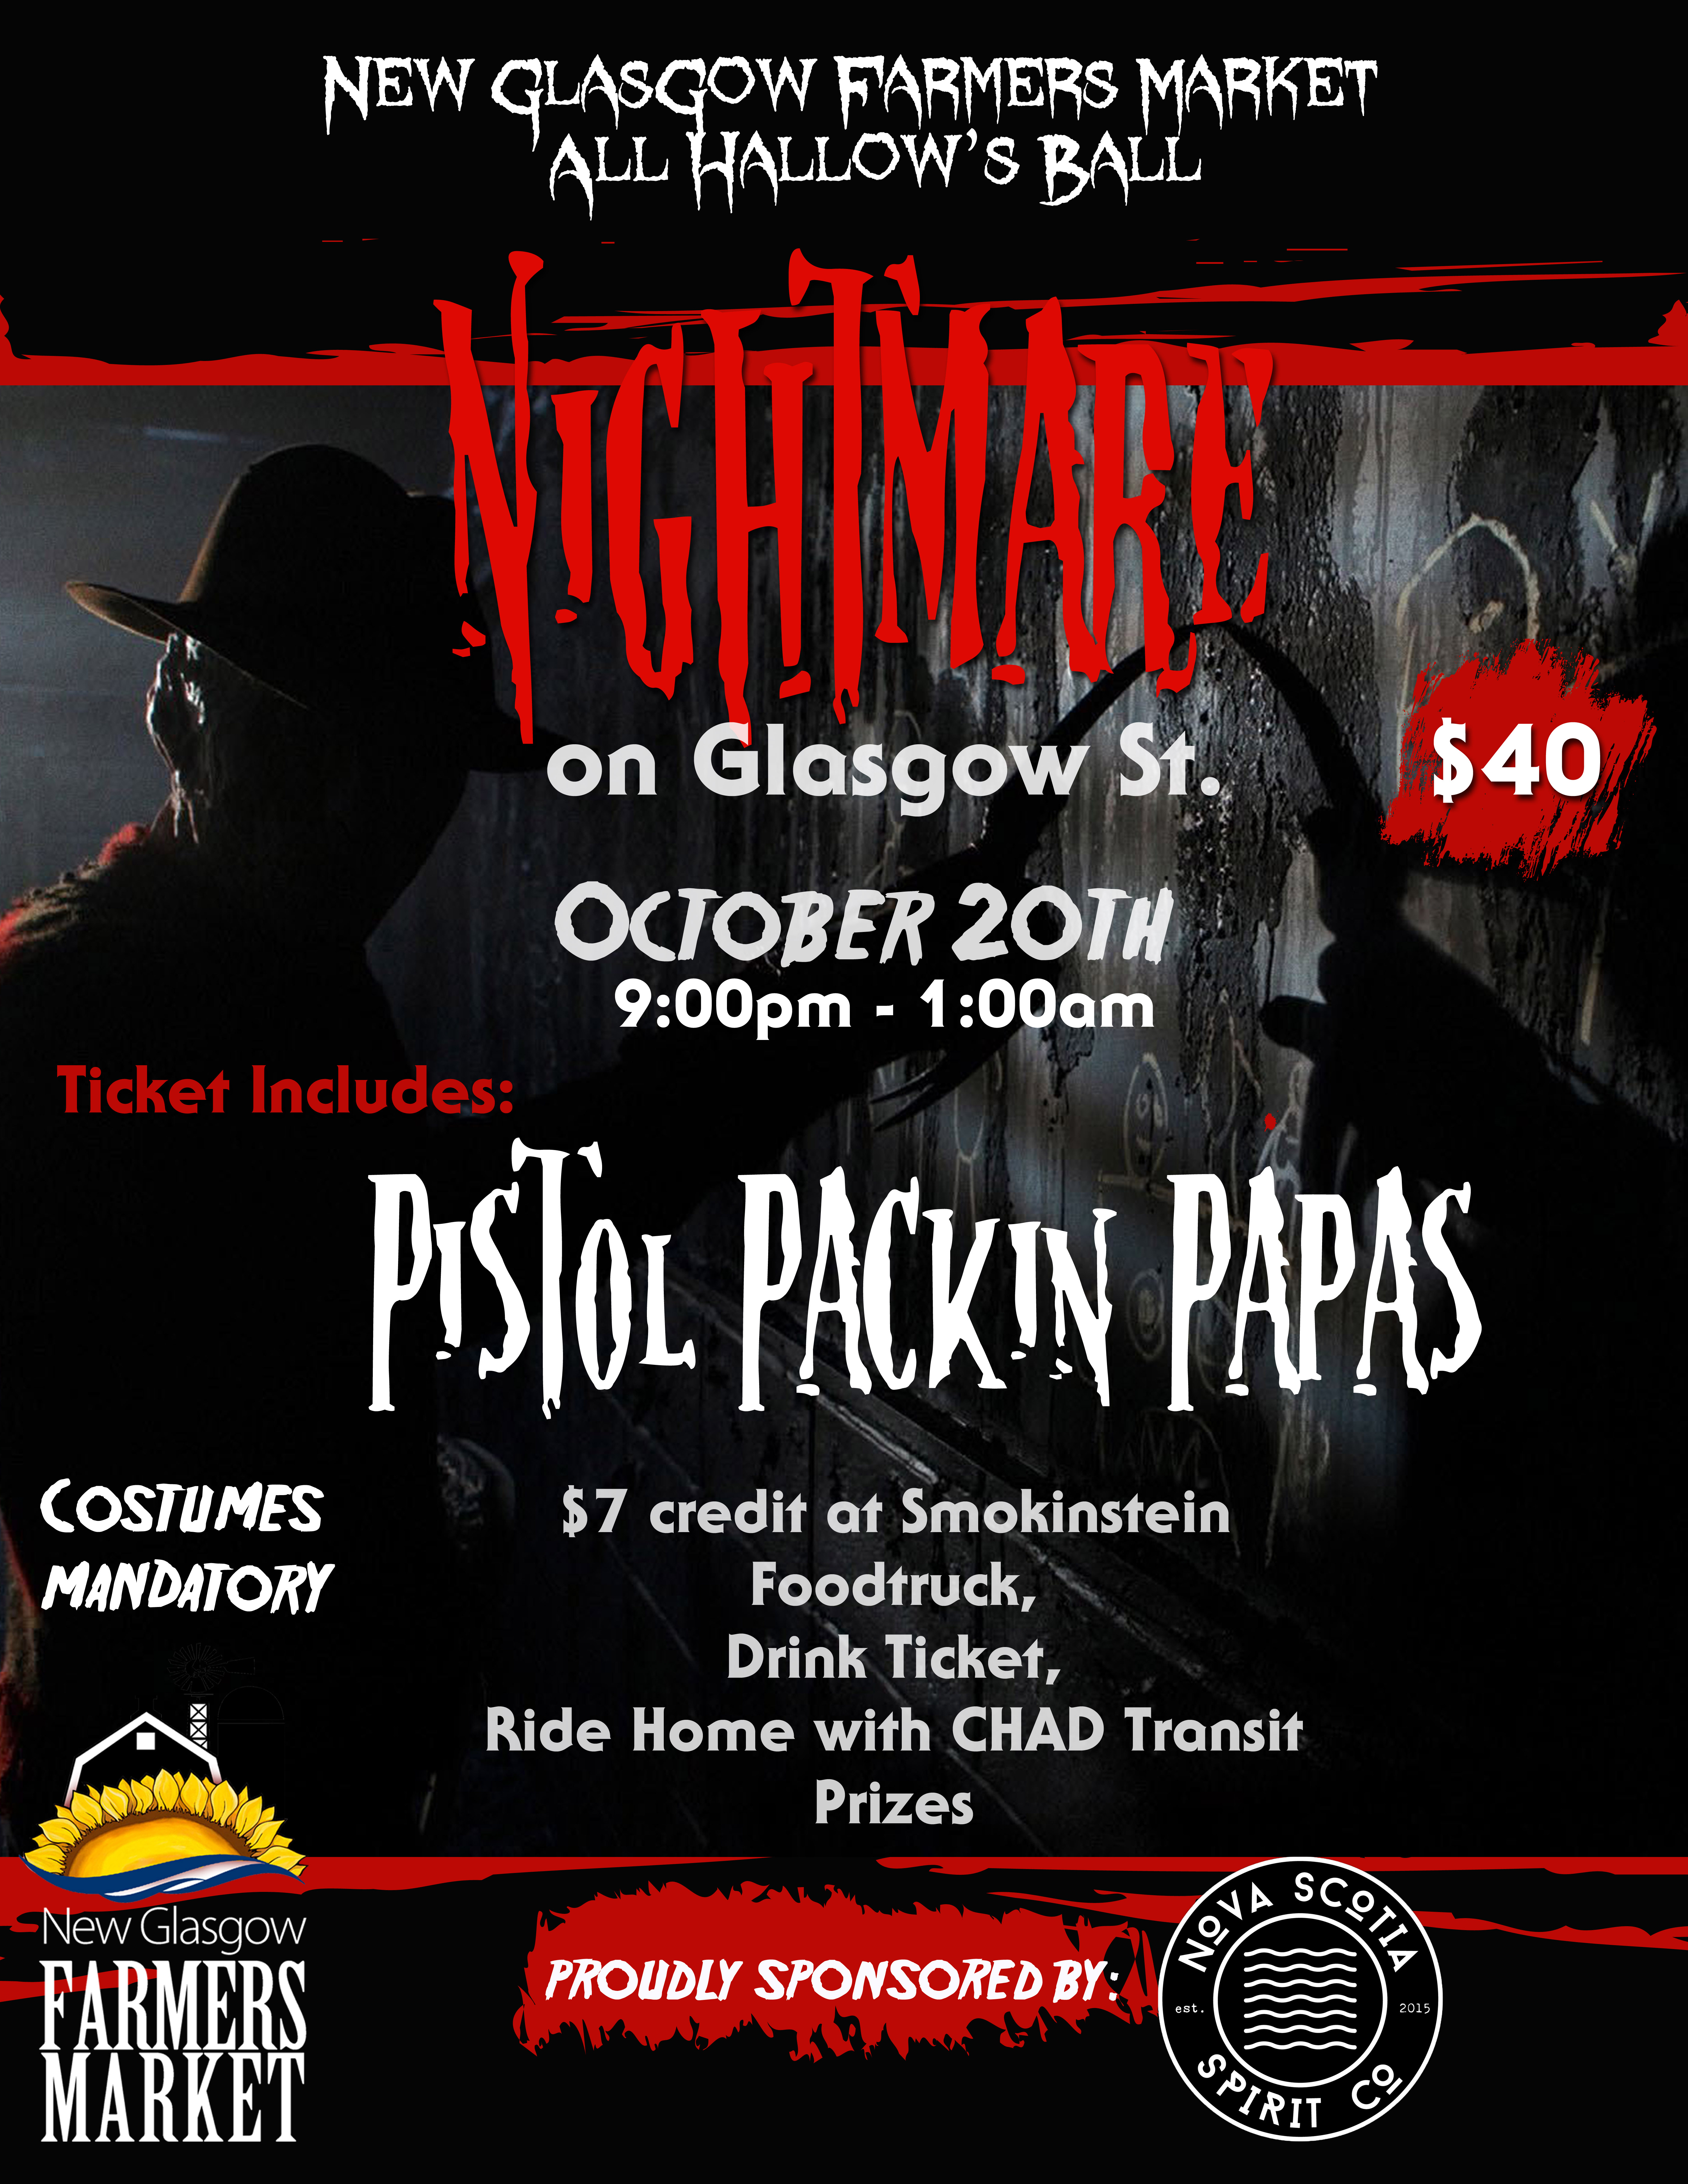 All Hallow's Ball – Nightmare on Glasgow St  – Local, Fresh